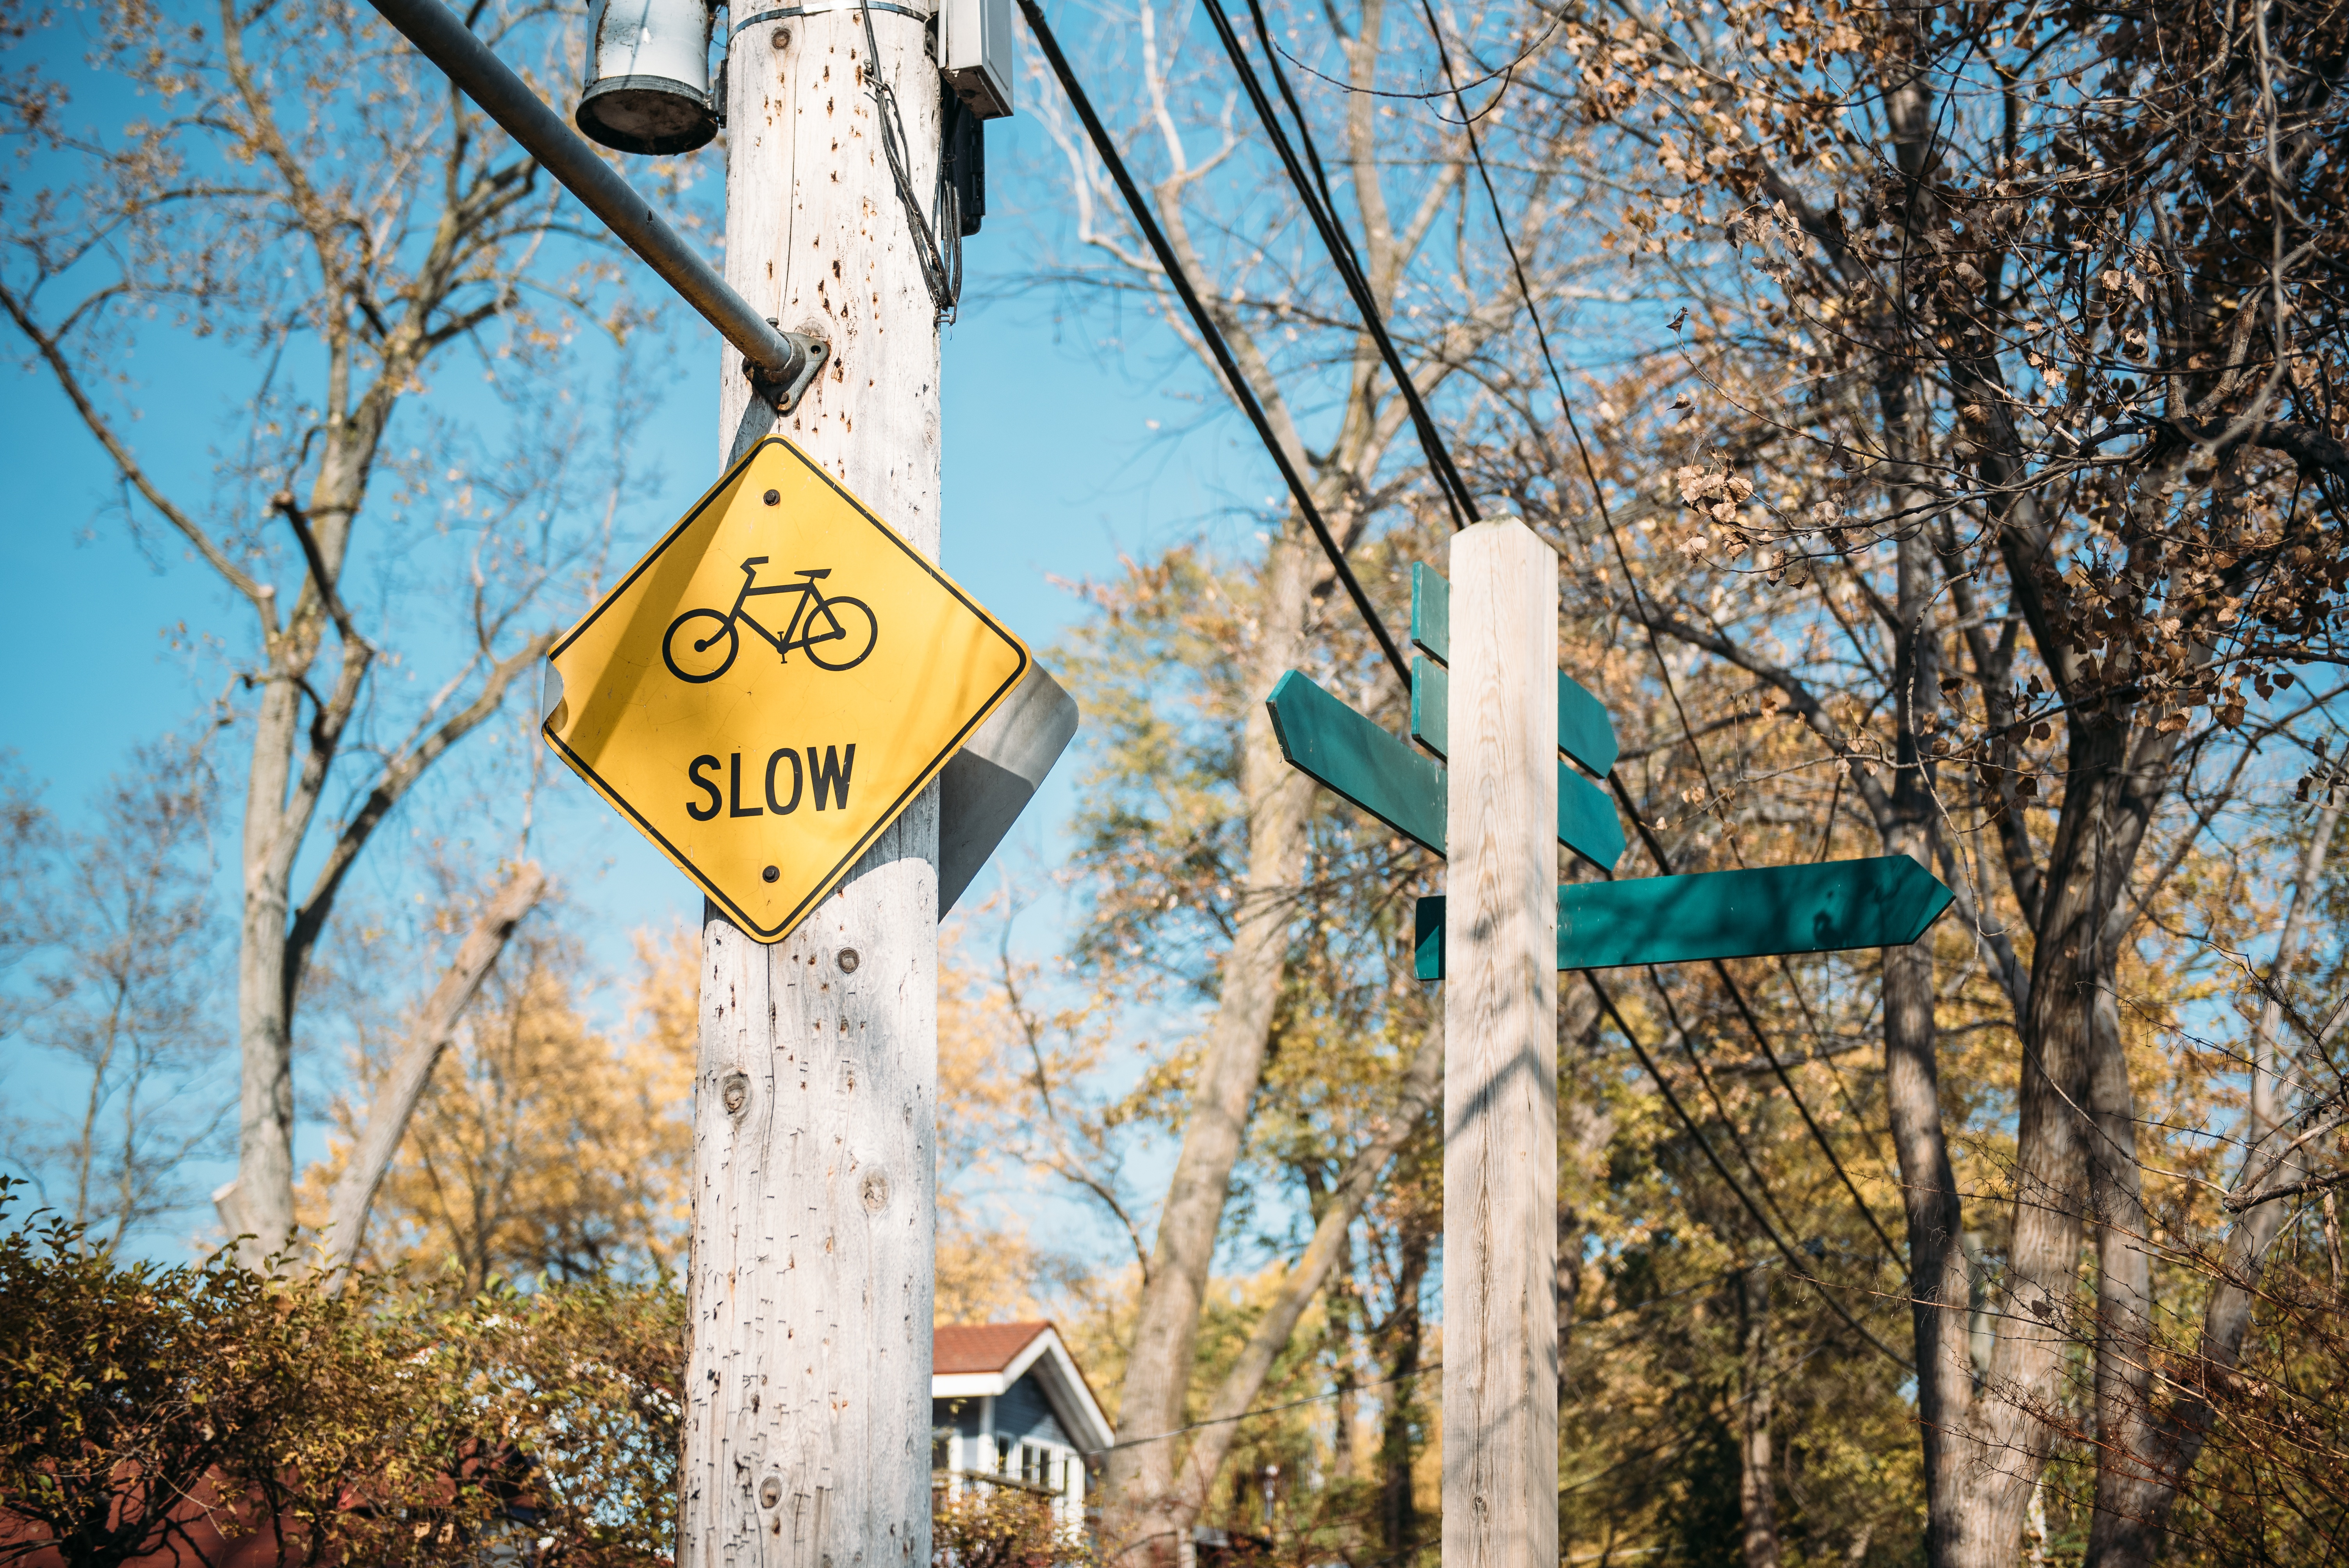 slow down street sign